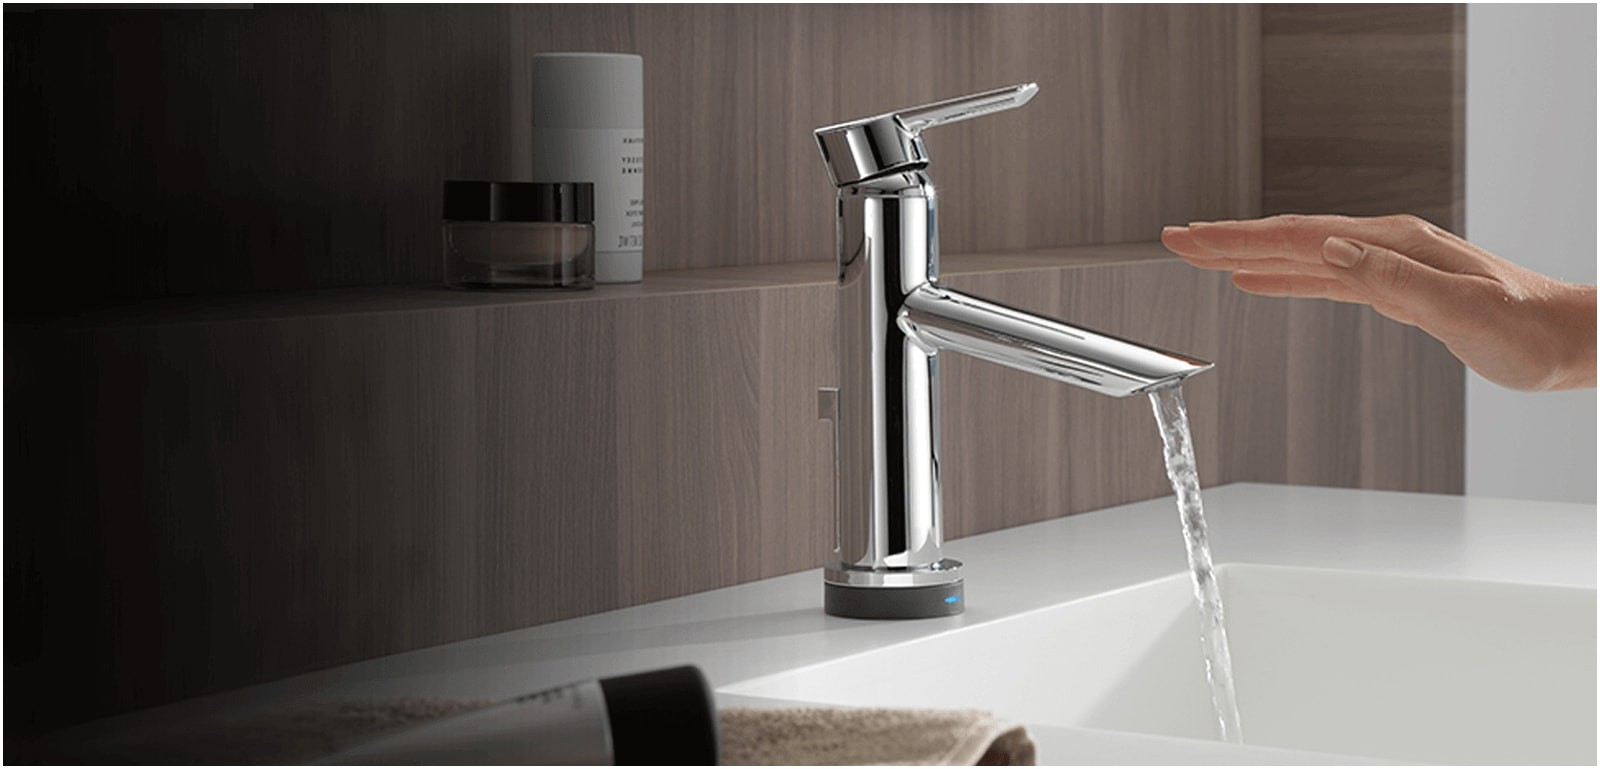 H Et H Home Nouveau Collection Home Design How to Fix Leaky Tub Faucet New Likeable High End